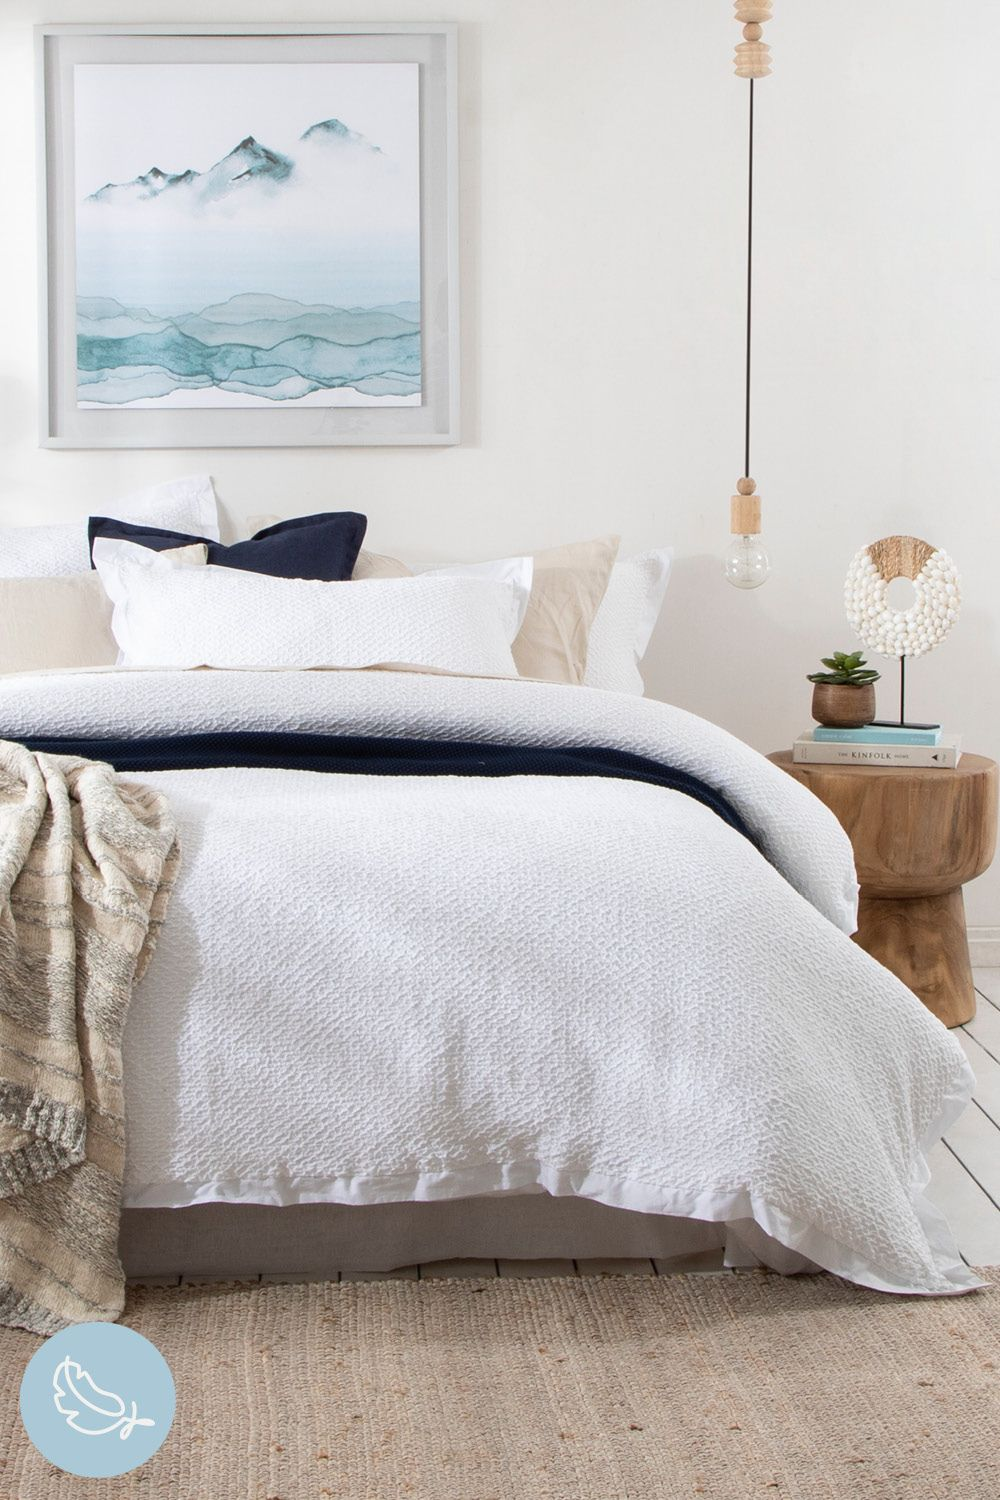 Give your bedroom an ultra-luxe update with our Hunter Quilt Cover Set. The stunning, crisp white design is beautiful textured - it truly feels as good as it looks! #PillowTalkAustralia #ForTheLoveOfComfort #bedroomdecor #bedroomstyling #quiltcoverset #quilt #bedroom